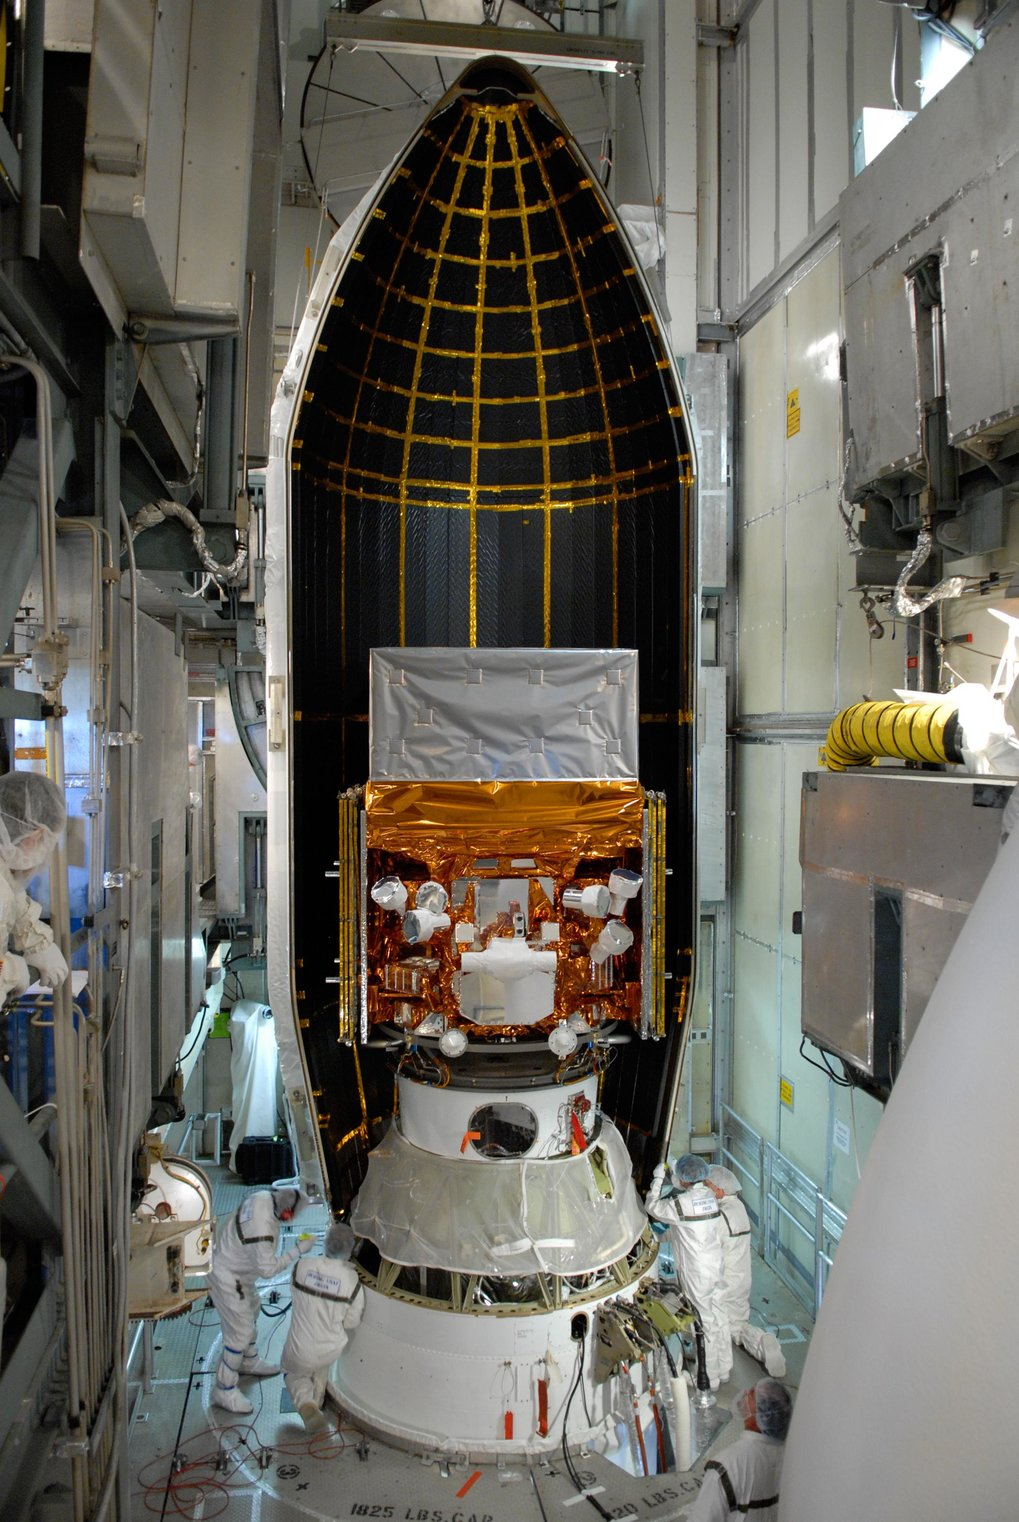 <p>Fermi celebrates 10 years of discoveries</p>